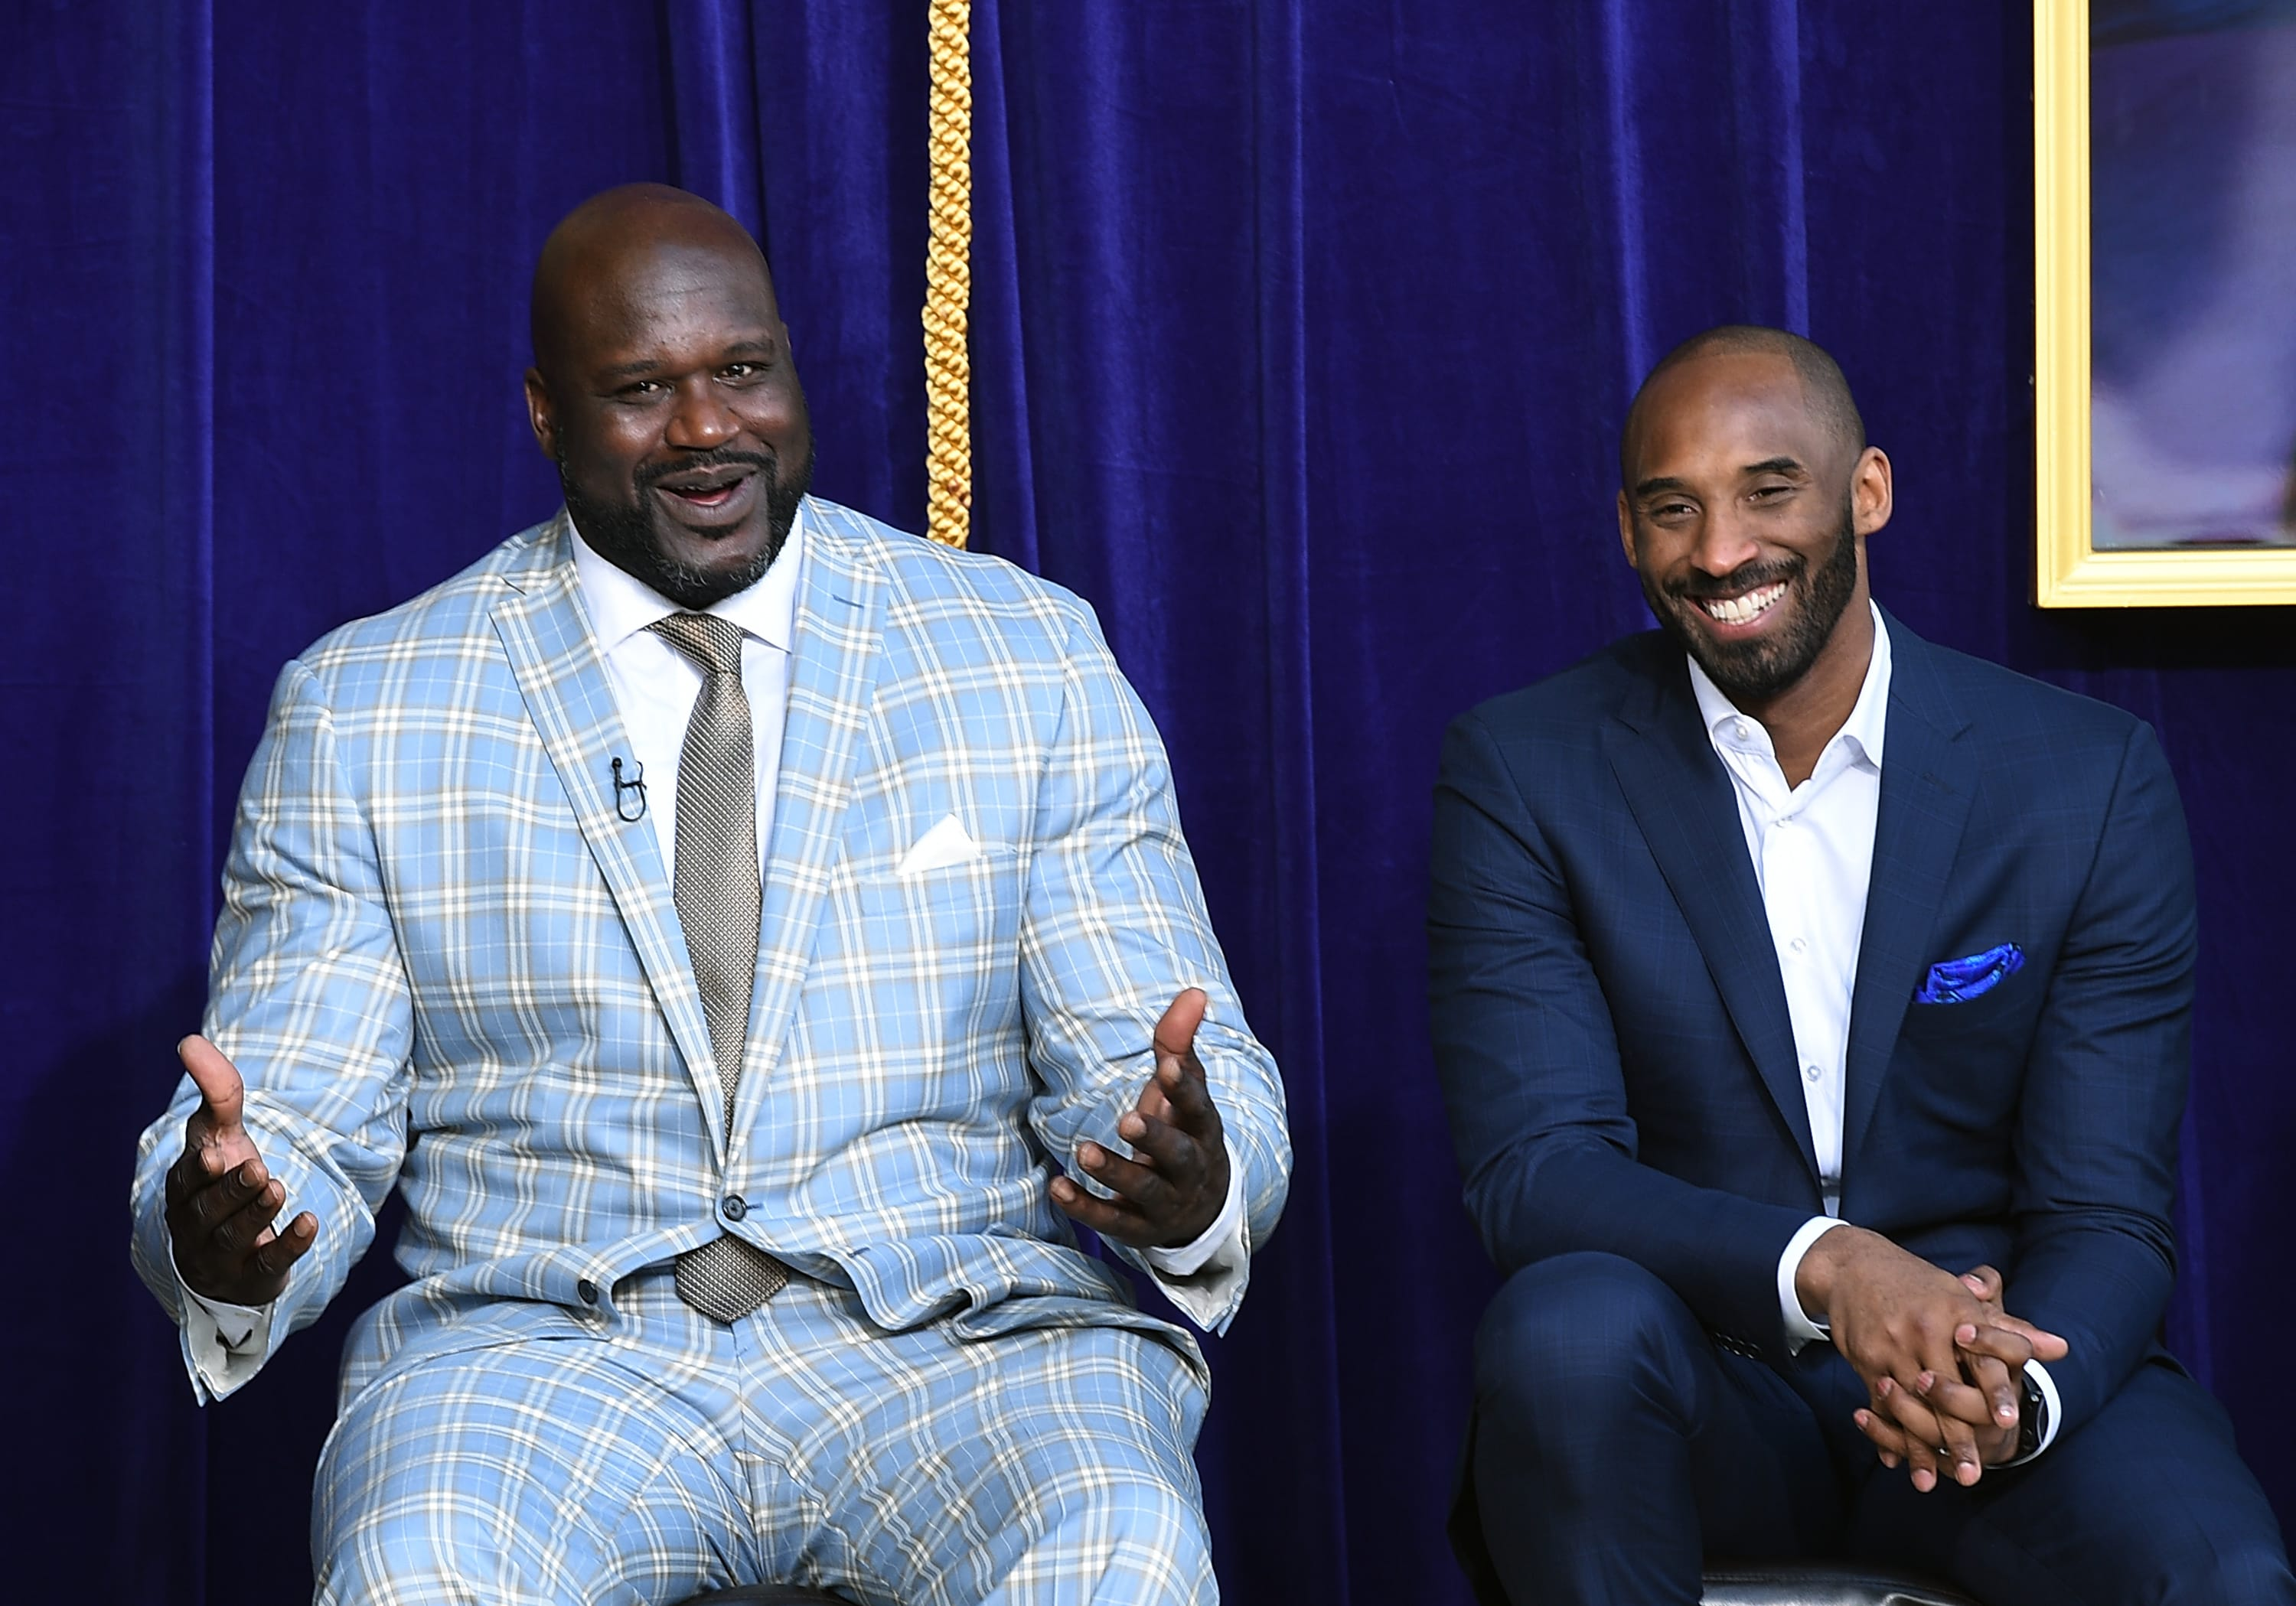 Los Angeles Lakers, Kobe Bryant, Shaquille O'Neal